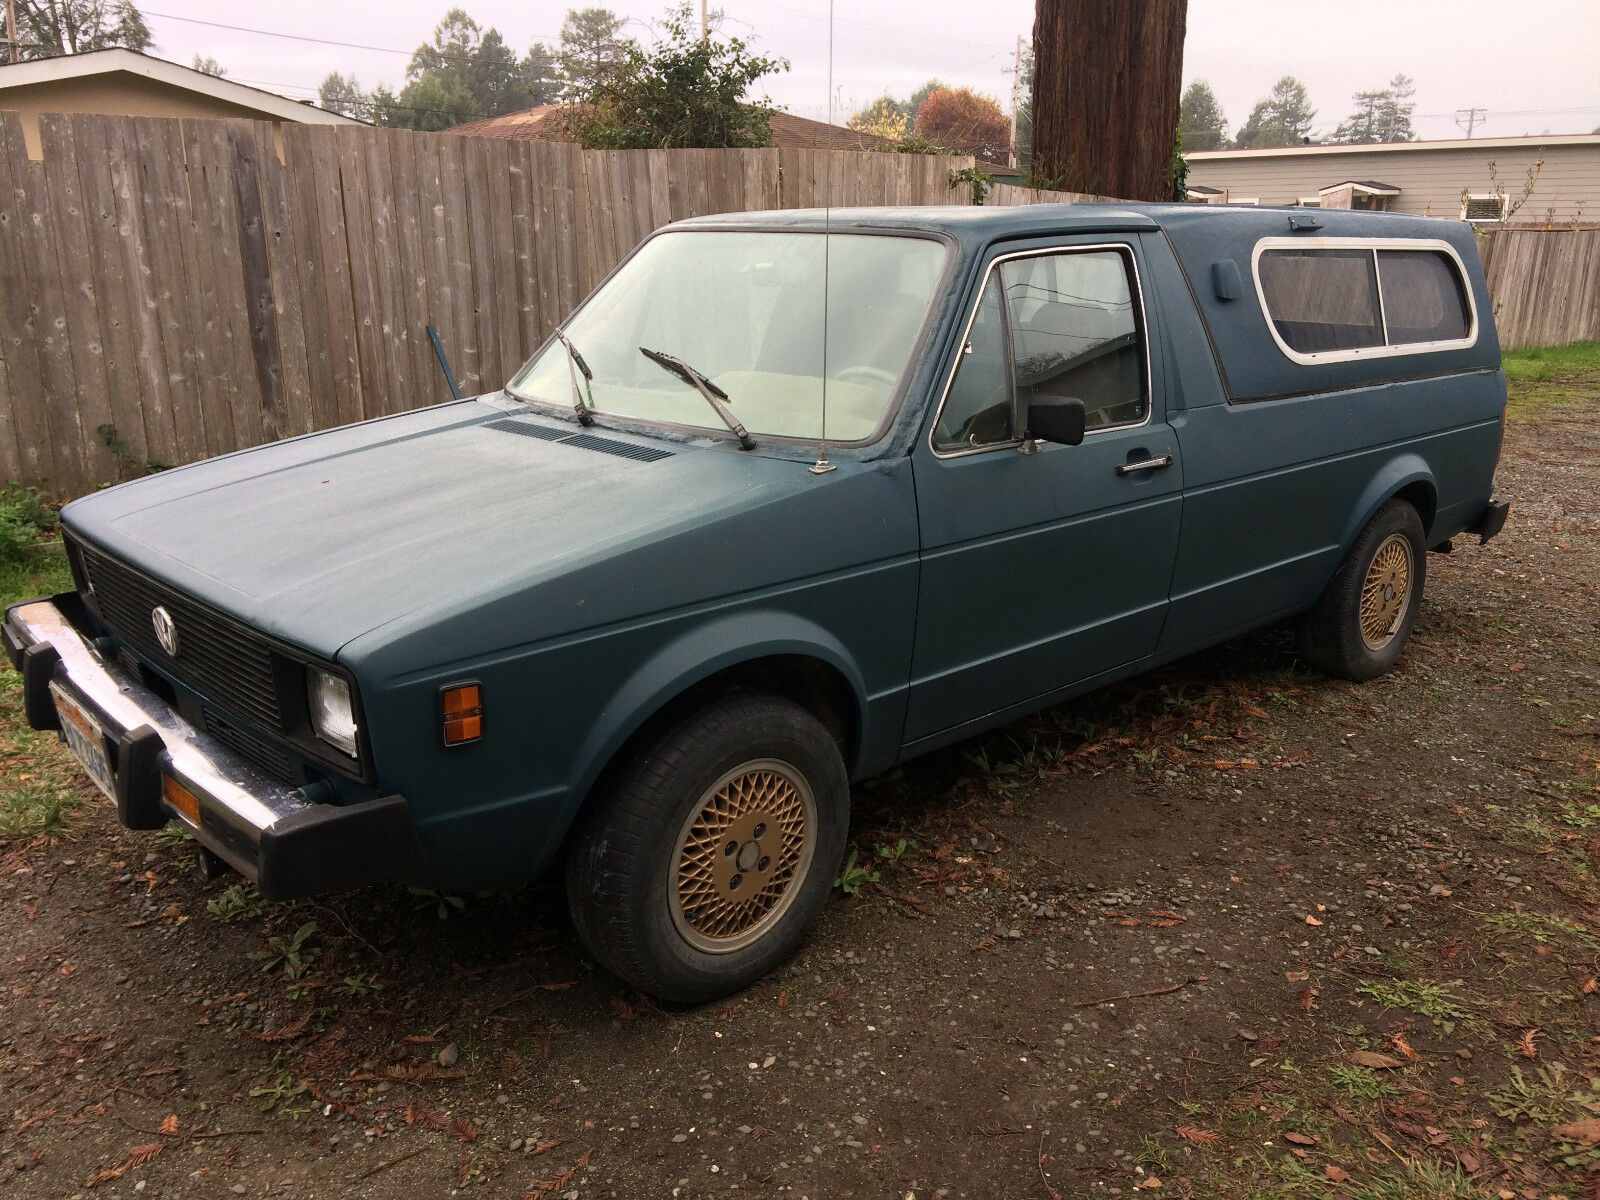 1980 vw volkswagen rabbit diesel pickup truck used volkswagen rabbit for sale in eureka. Black Bedroom Furniture Sets. Home Design Ideas